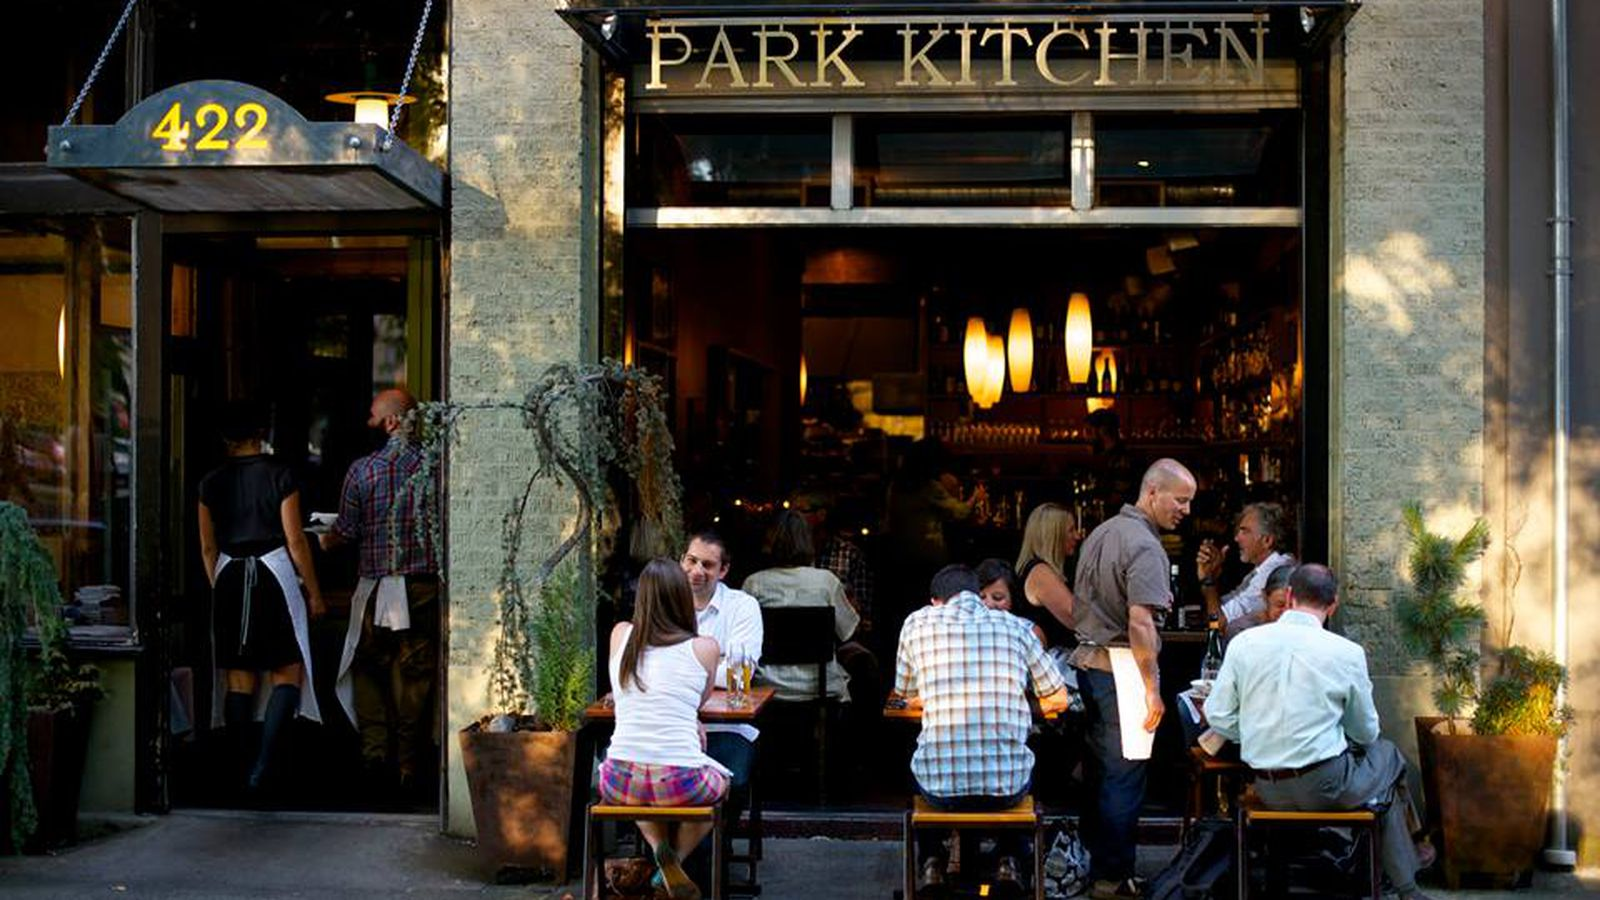 Park Kitchen Says Going Tipless \'Works\' - Eater Portland